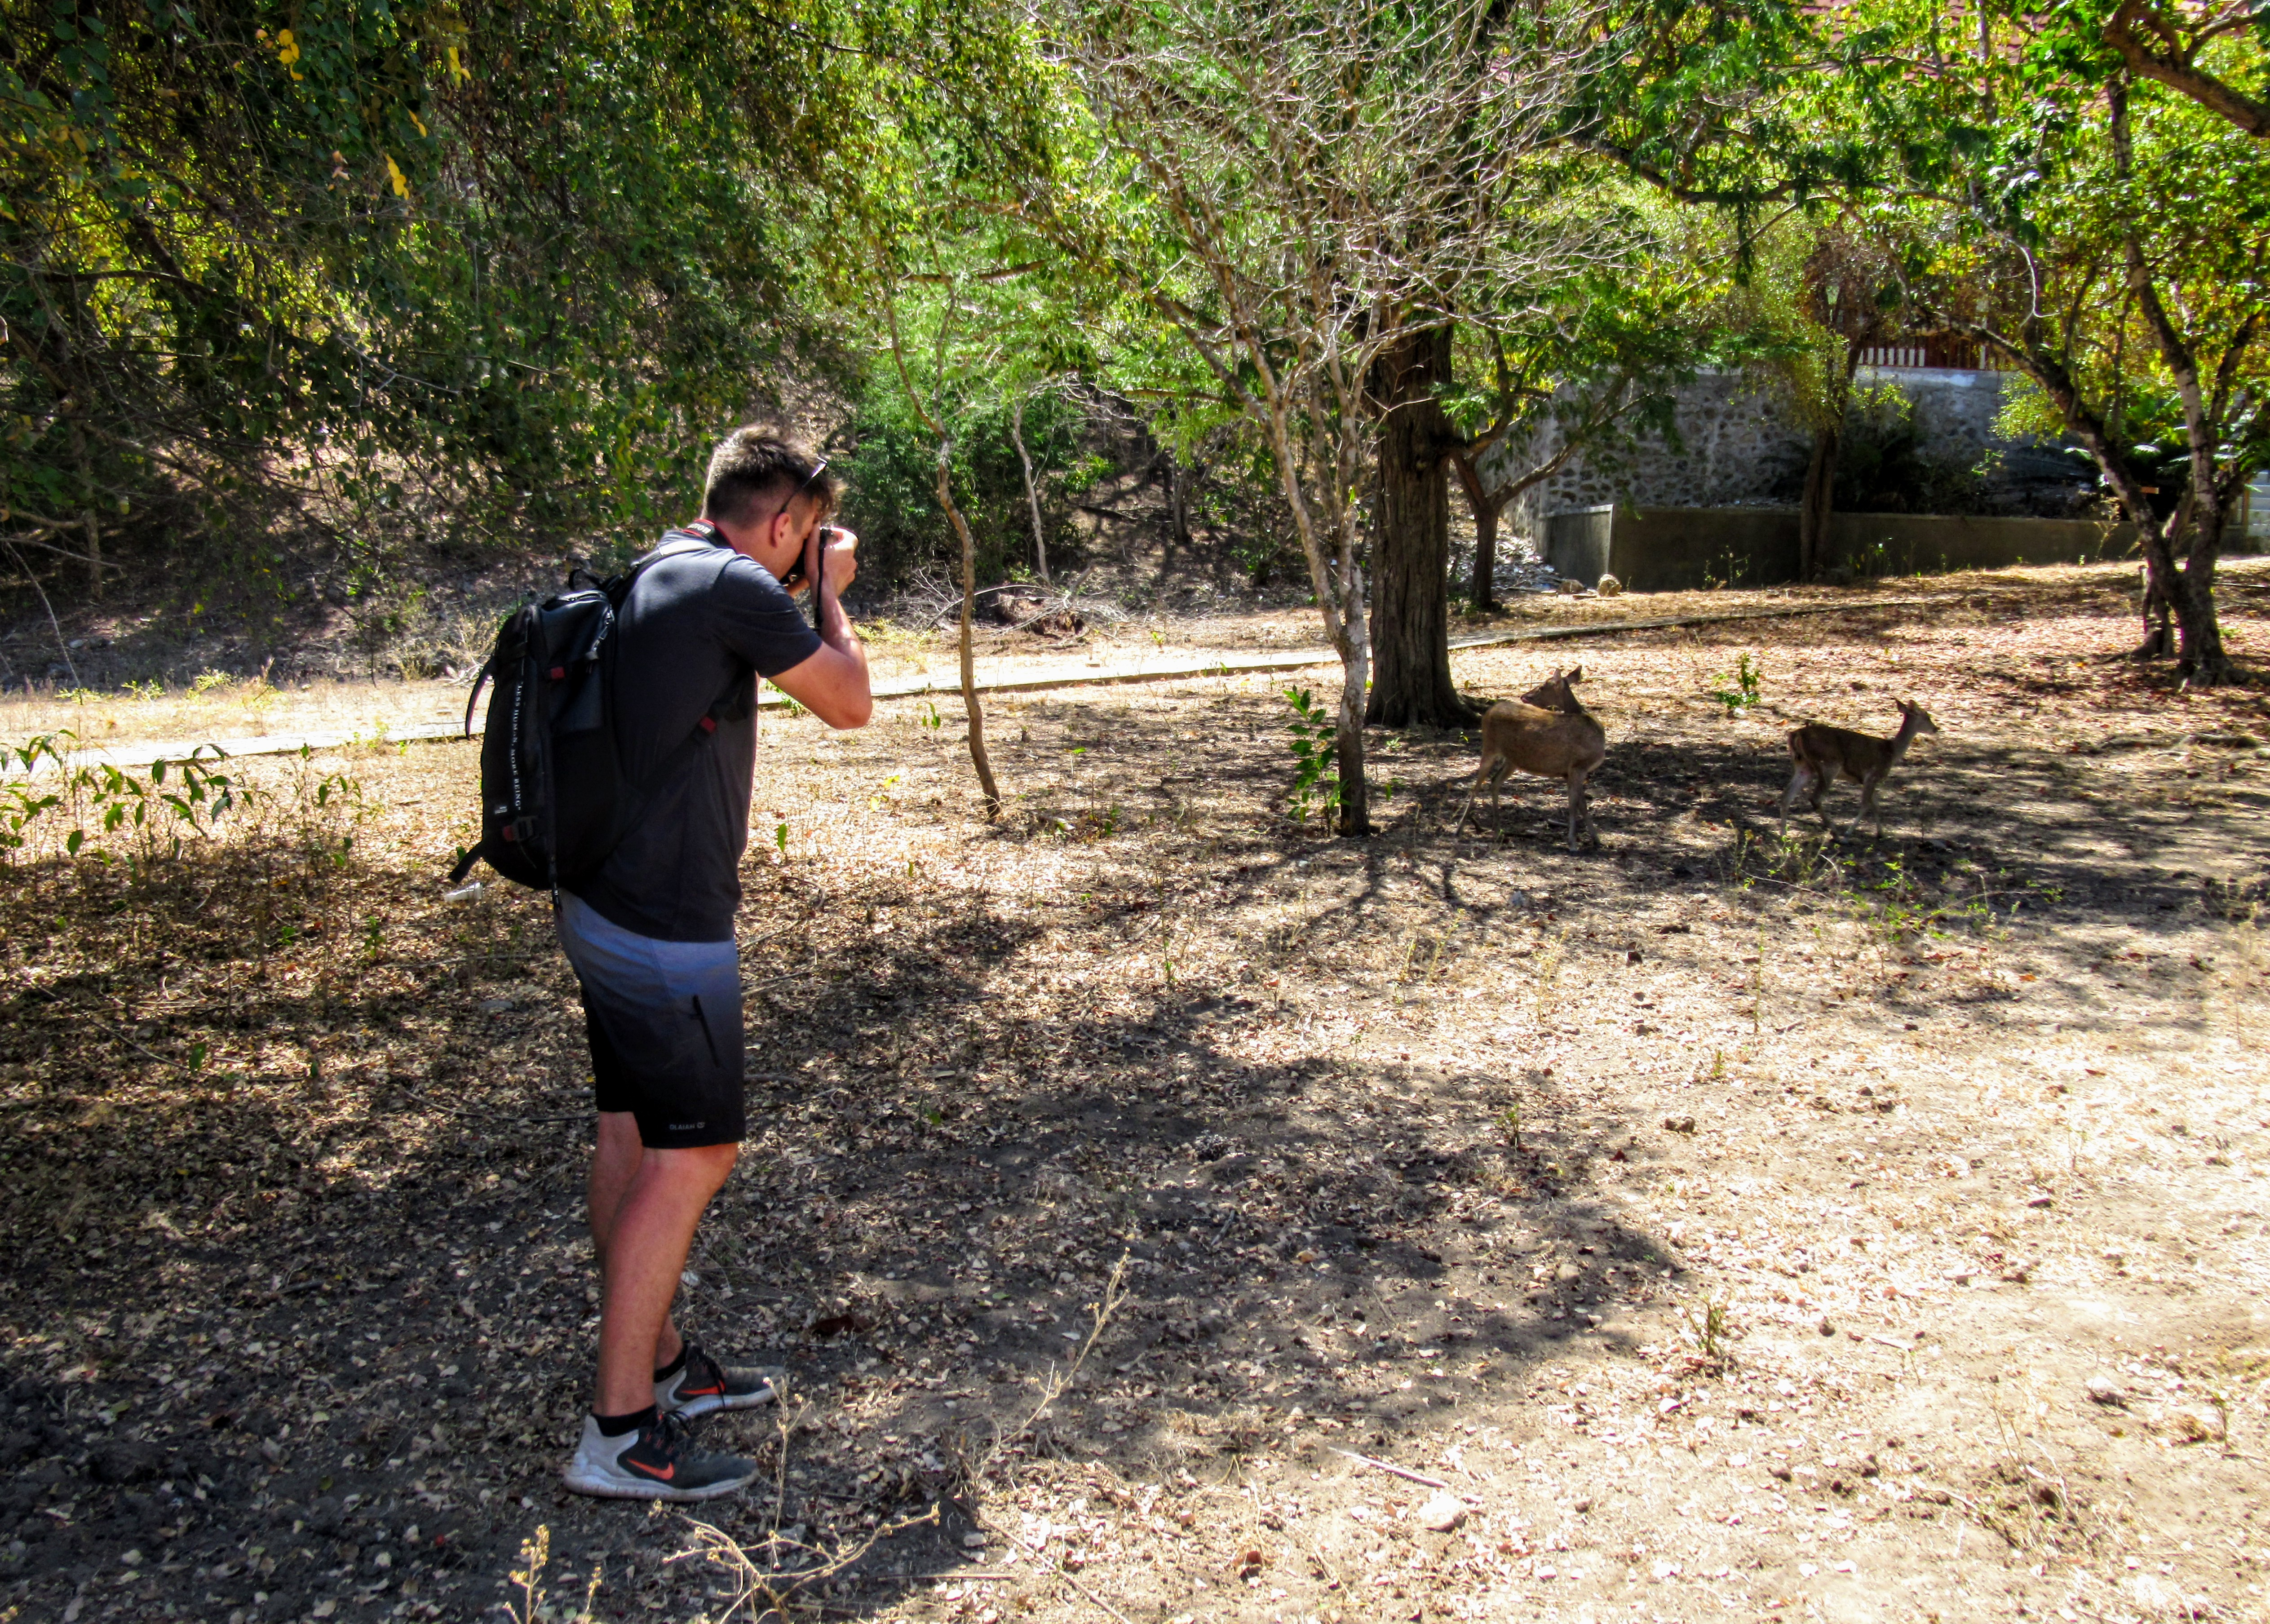 Tourist photographing deer on Komodo Island, Indonesia